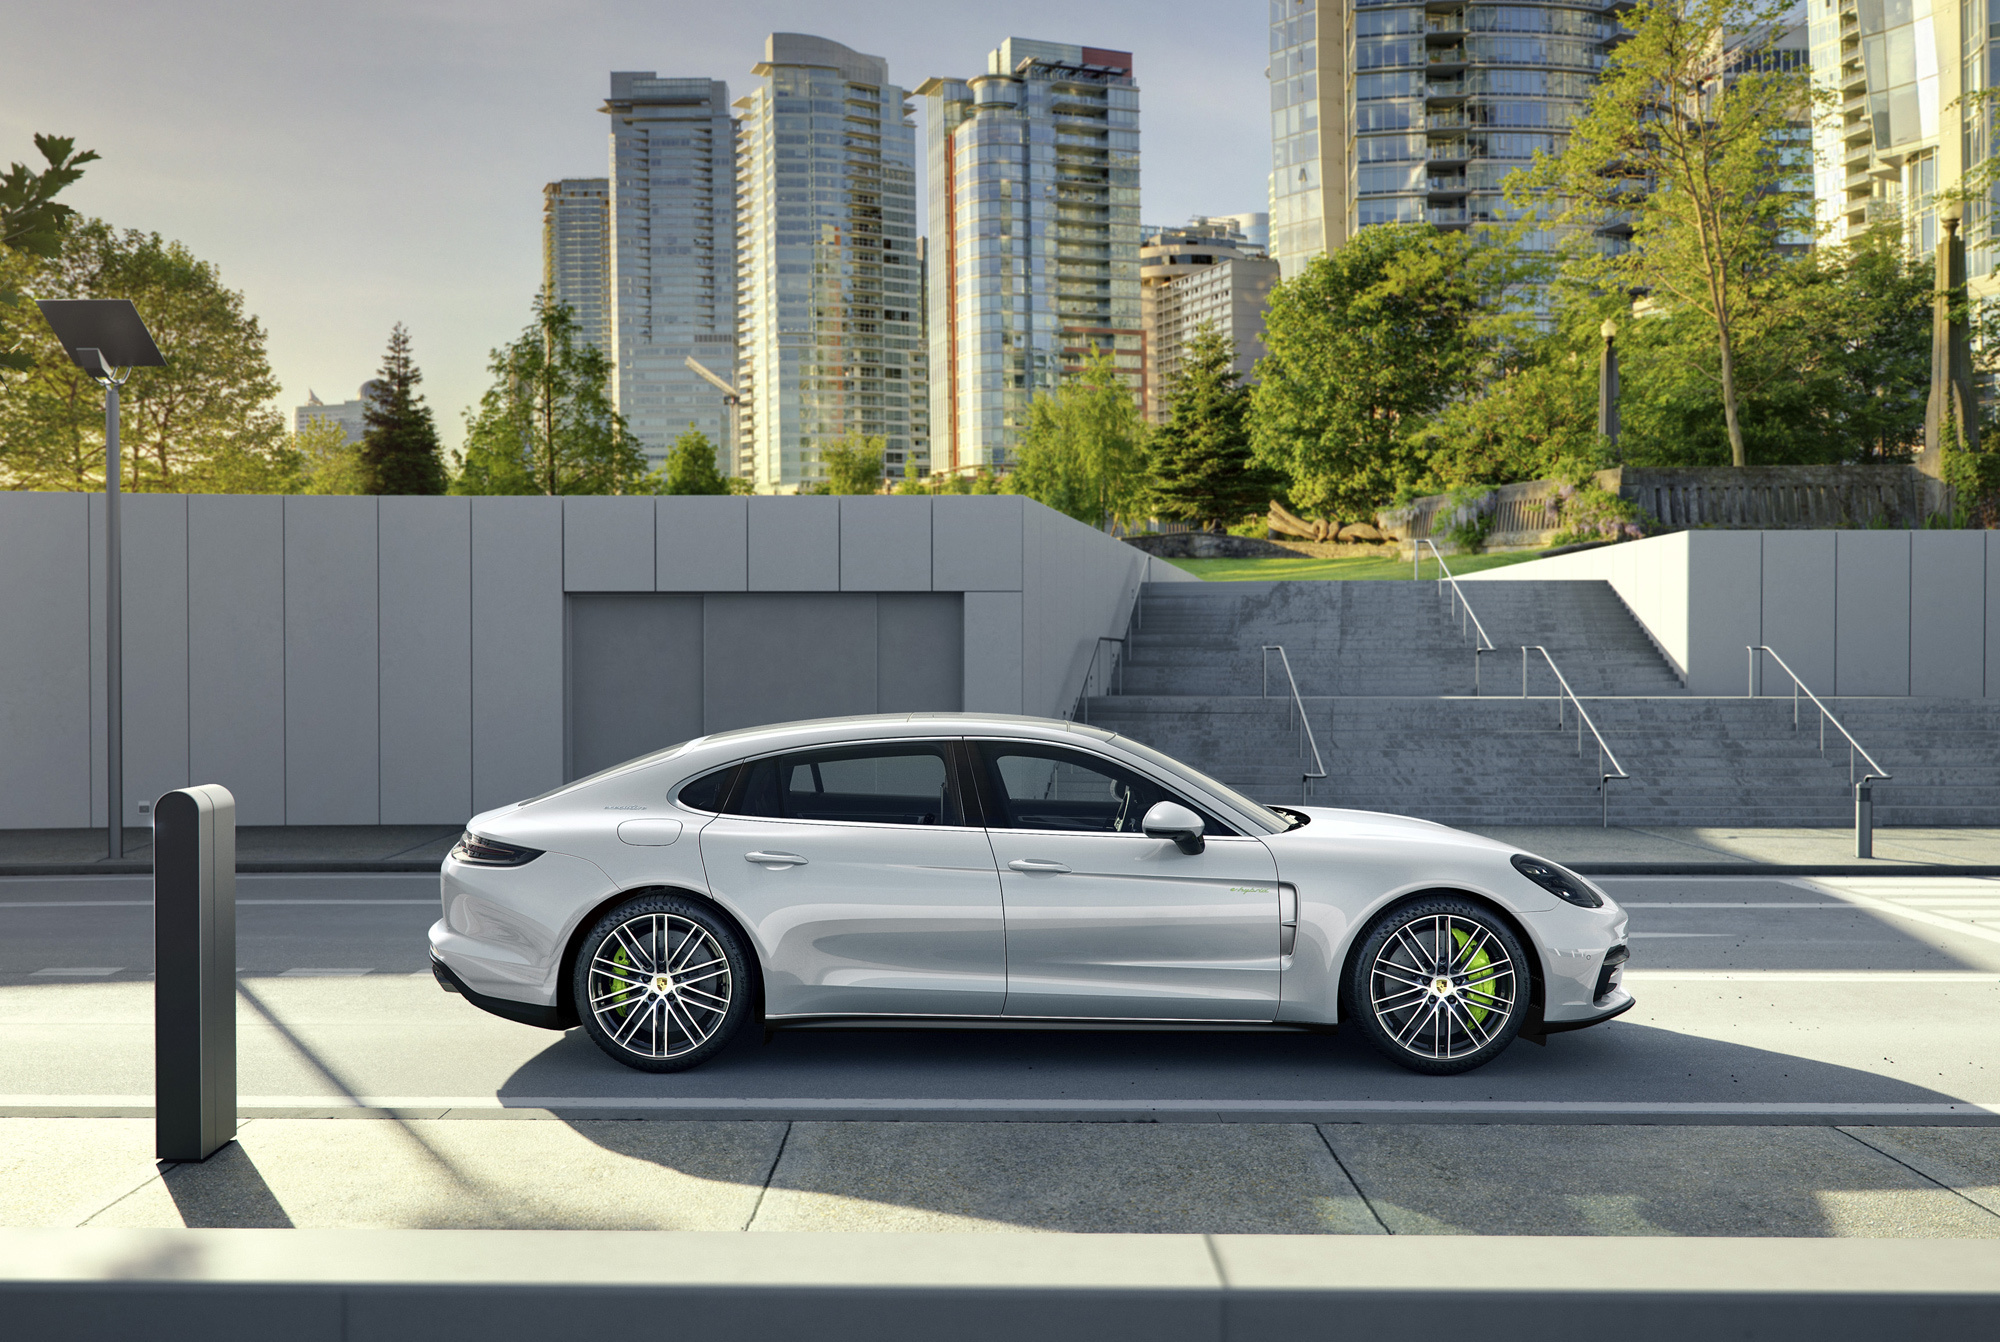 Porsche Panamera Executive Images